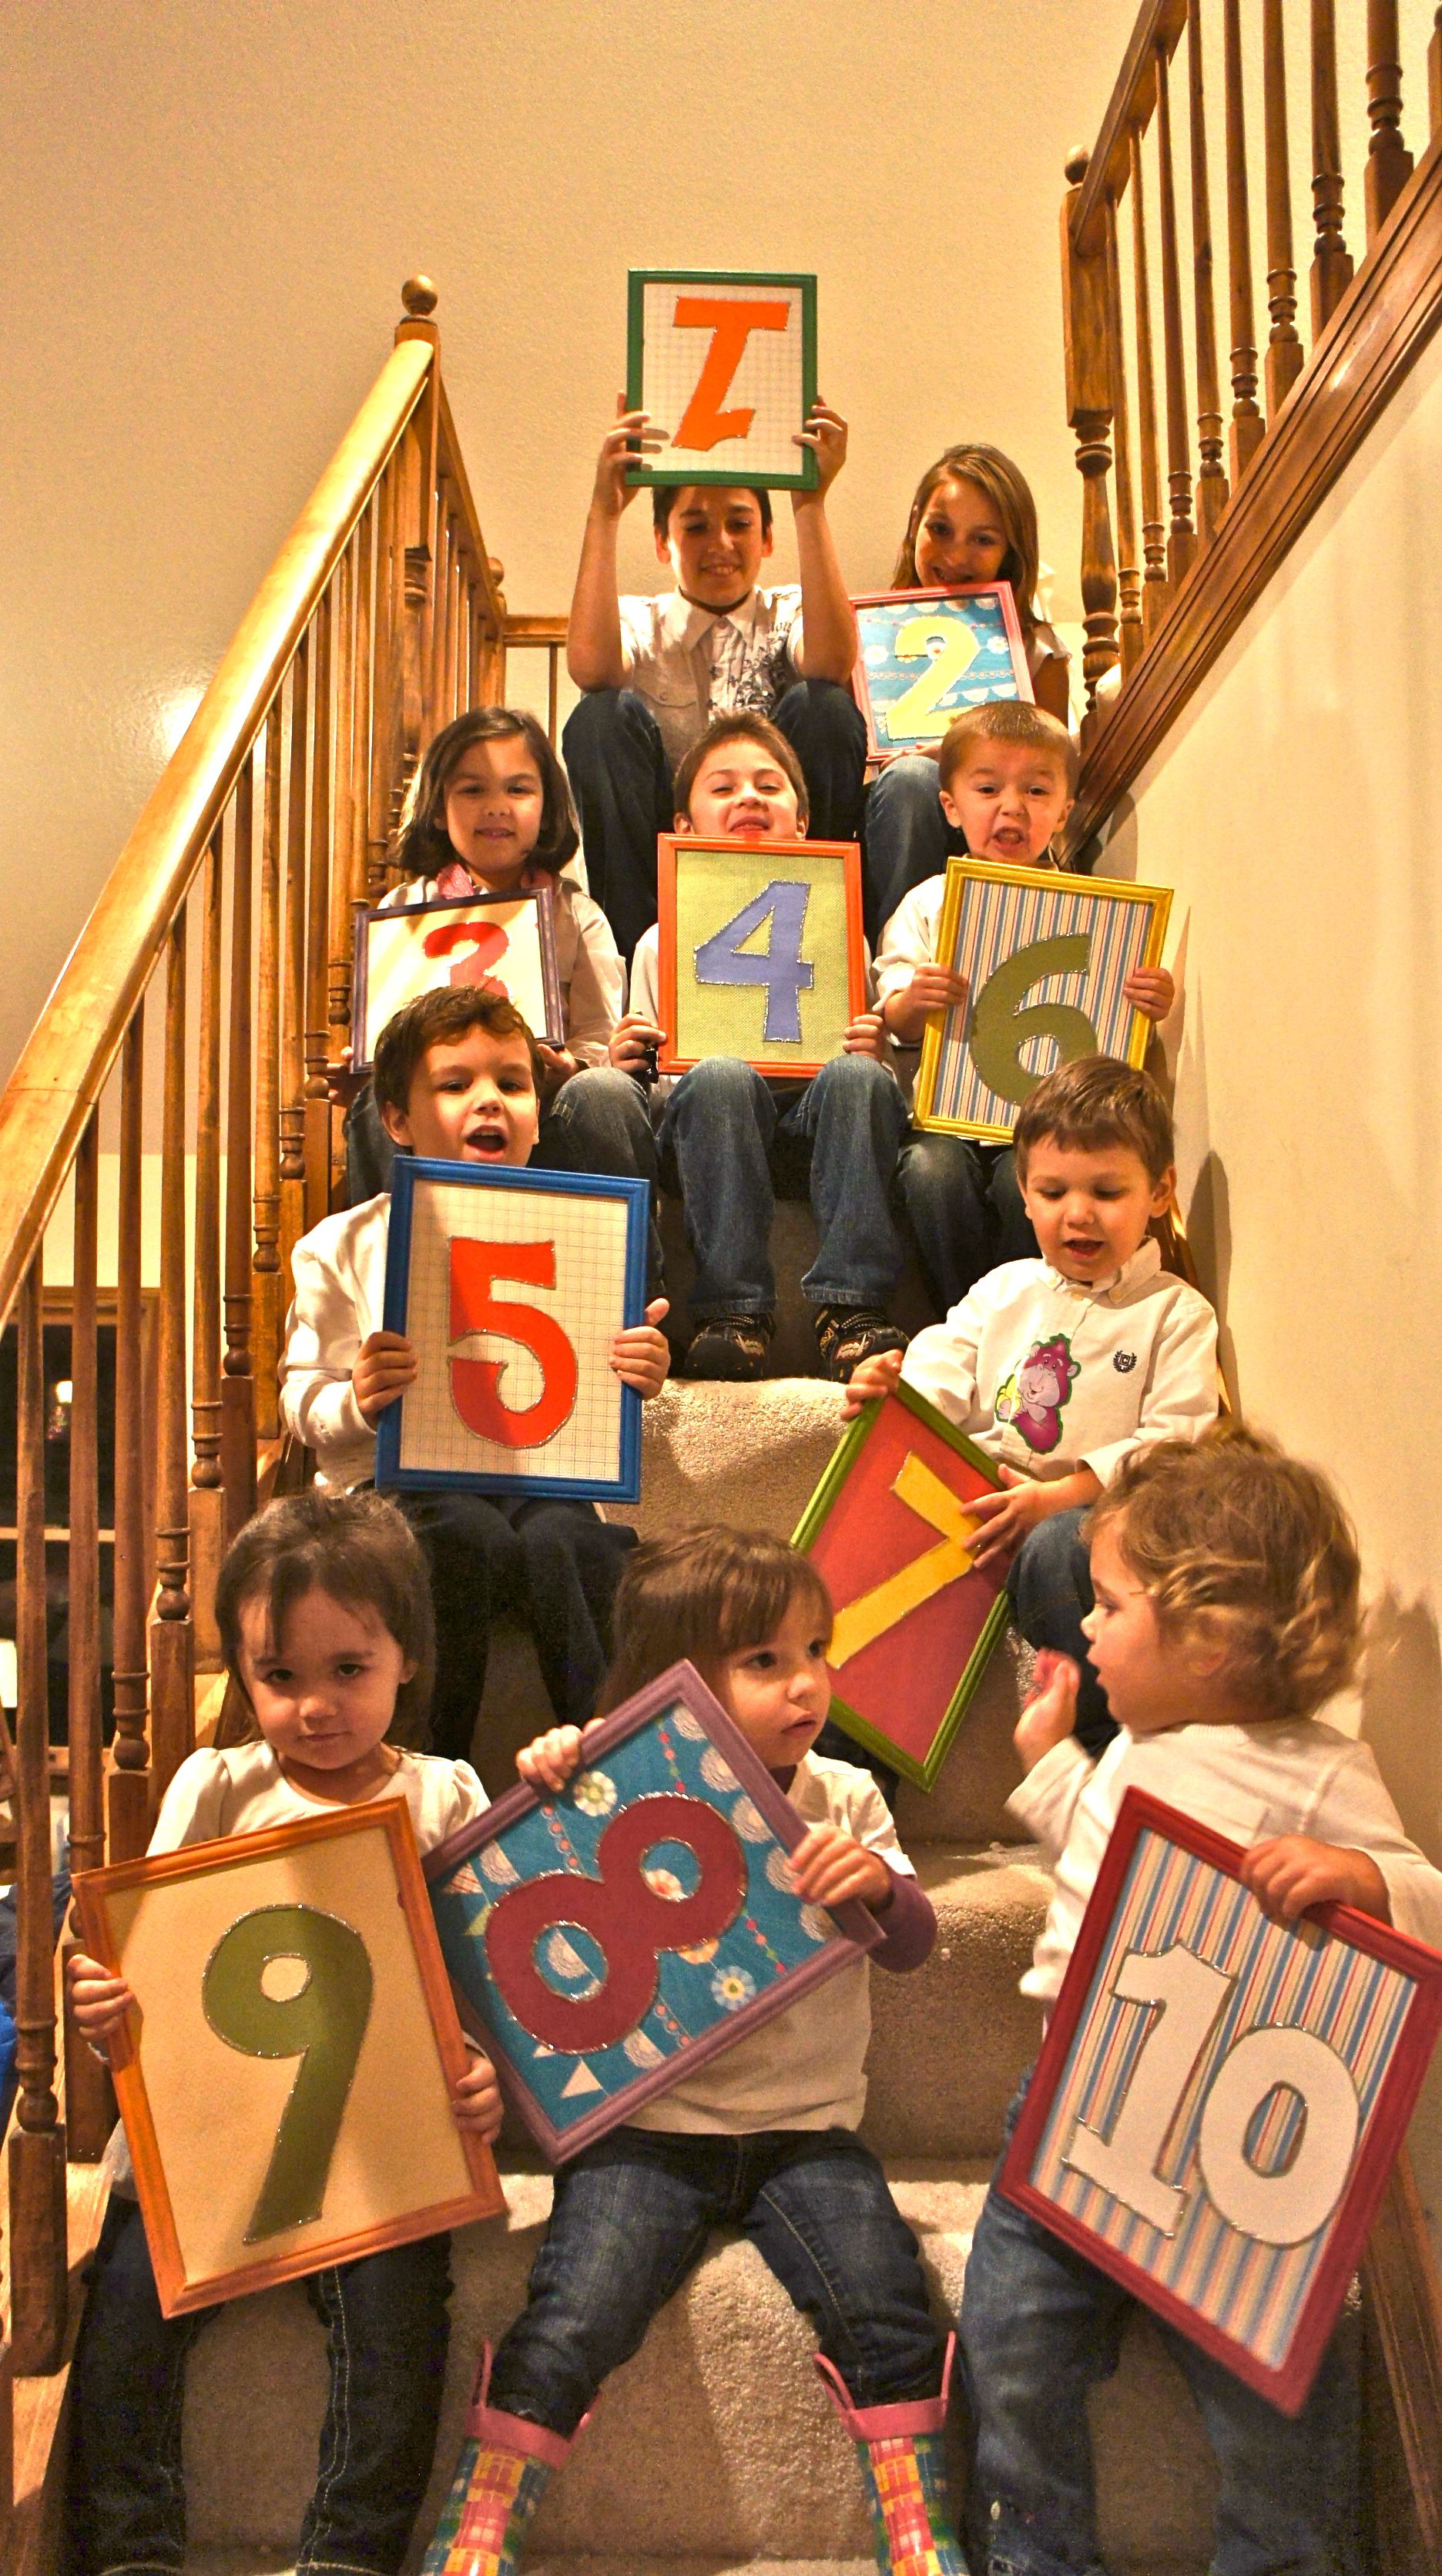 For grandparents... all the grandkids holding their # in birth order!